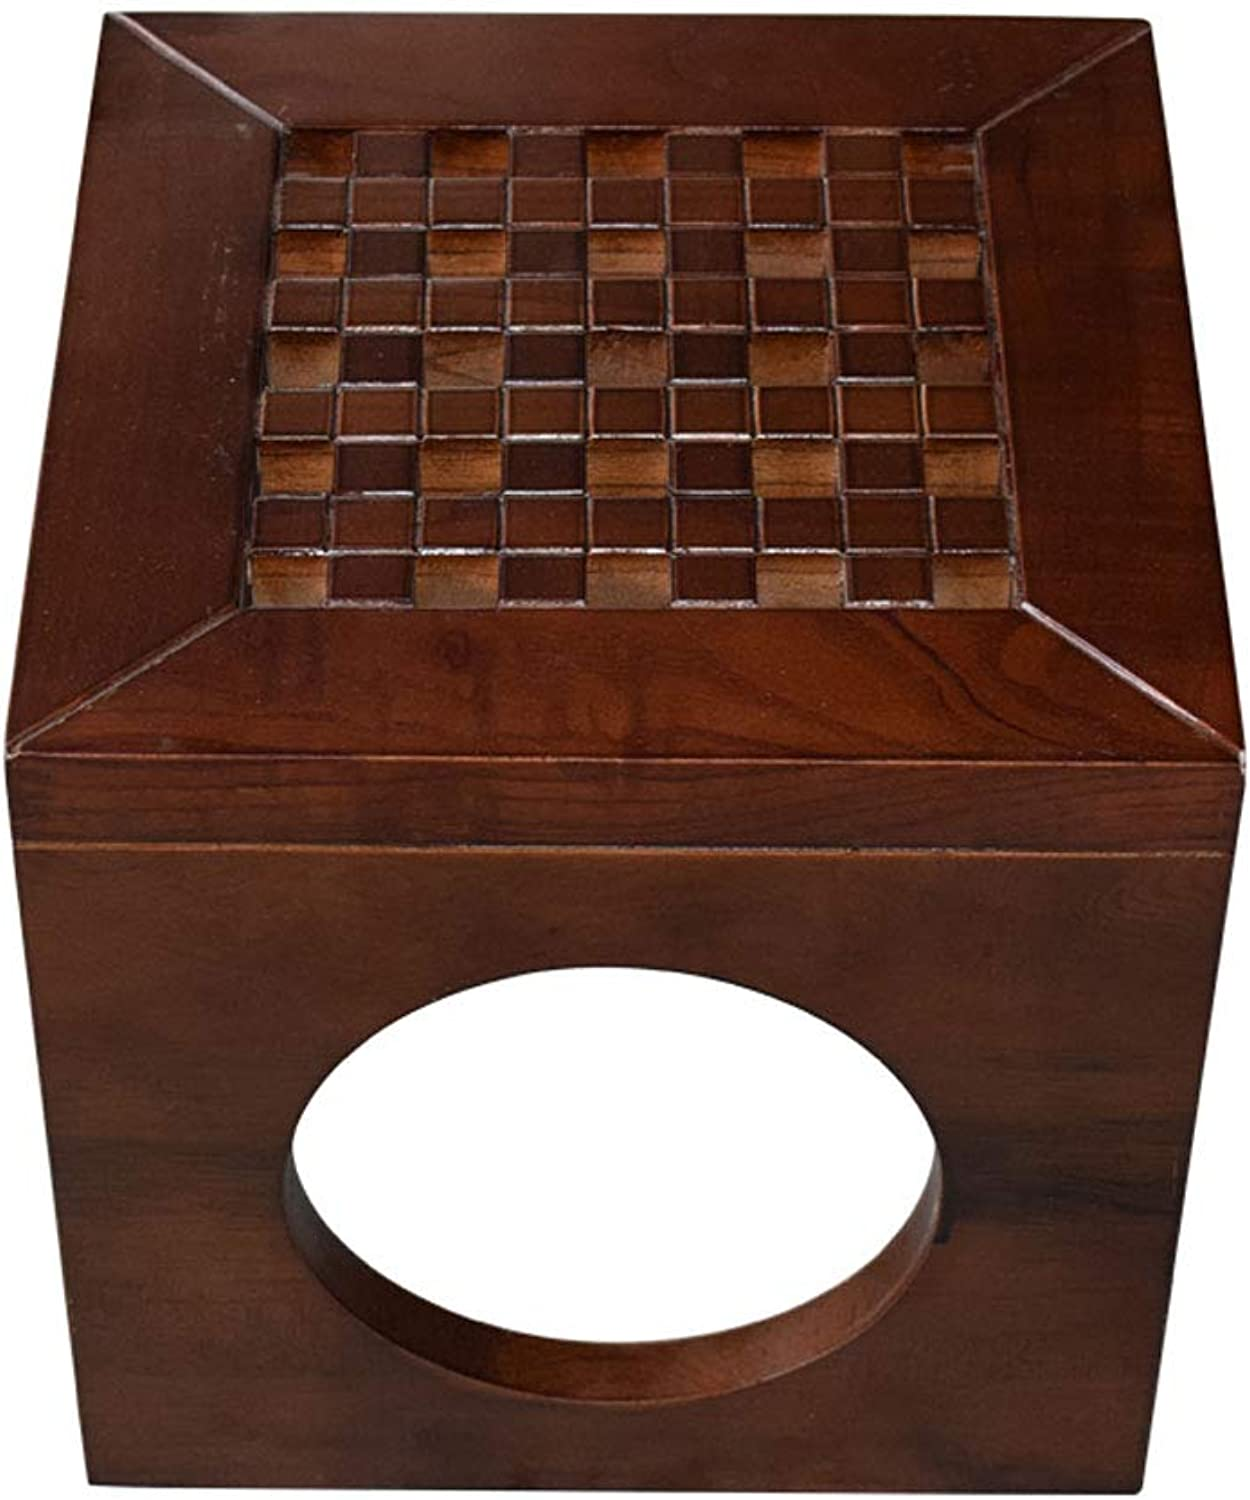 Square Stool Solid Wood Multi-Function Box Design Living Room Coffee Table Retro Small Bench V (color   D, Size   L28CMXW28CMXH28CM)